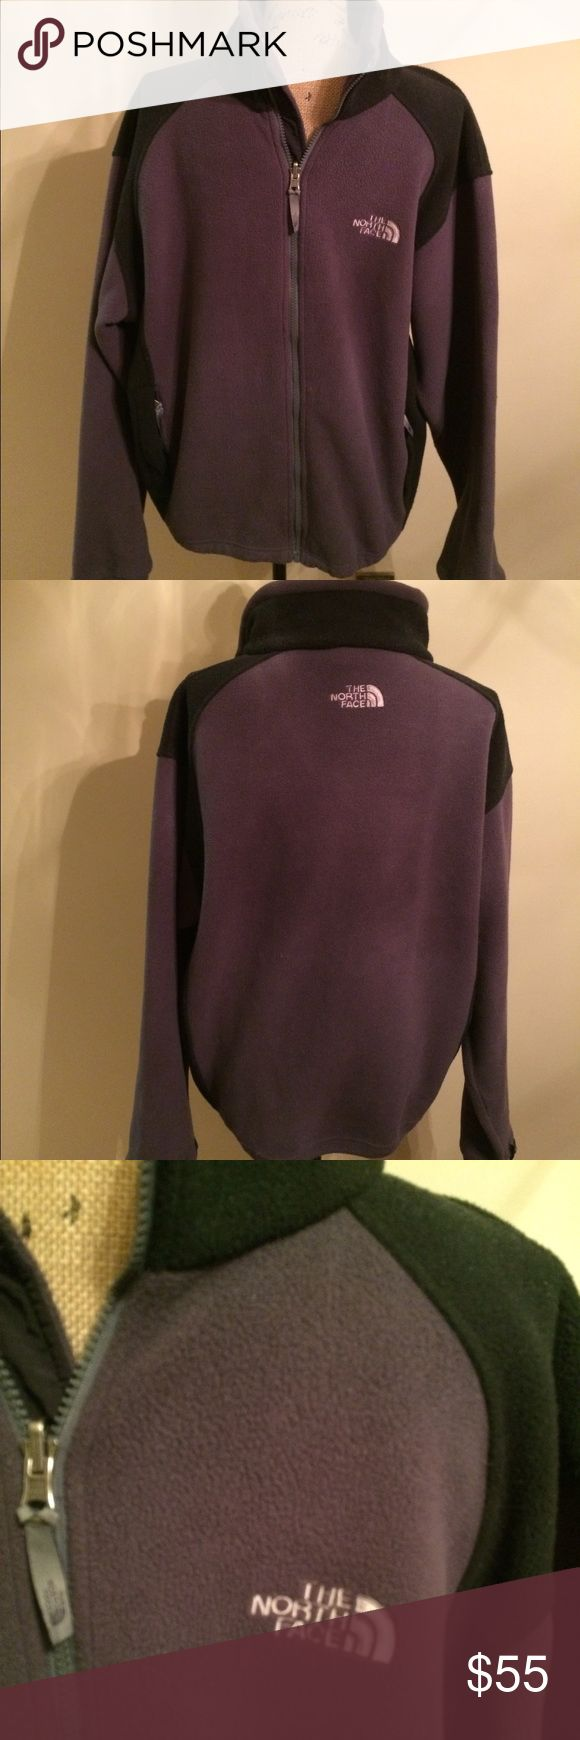 Mens North Face Jacket grey& black 🎉 North Face 🎉 Size Medium 🎉Gently used 🎉 Can be zipped into coat 🎉 Please ask for additional pictures, measurements, or ask questions before purchase. 🎉 No trades or other apps 🎉 Ships next business day, unless noted in my closet  🎉 Bundle for discount North Face Jackets & Coats